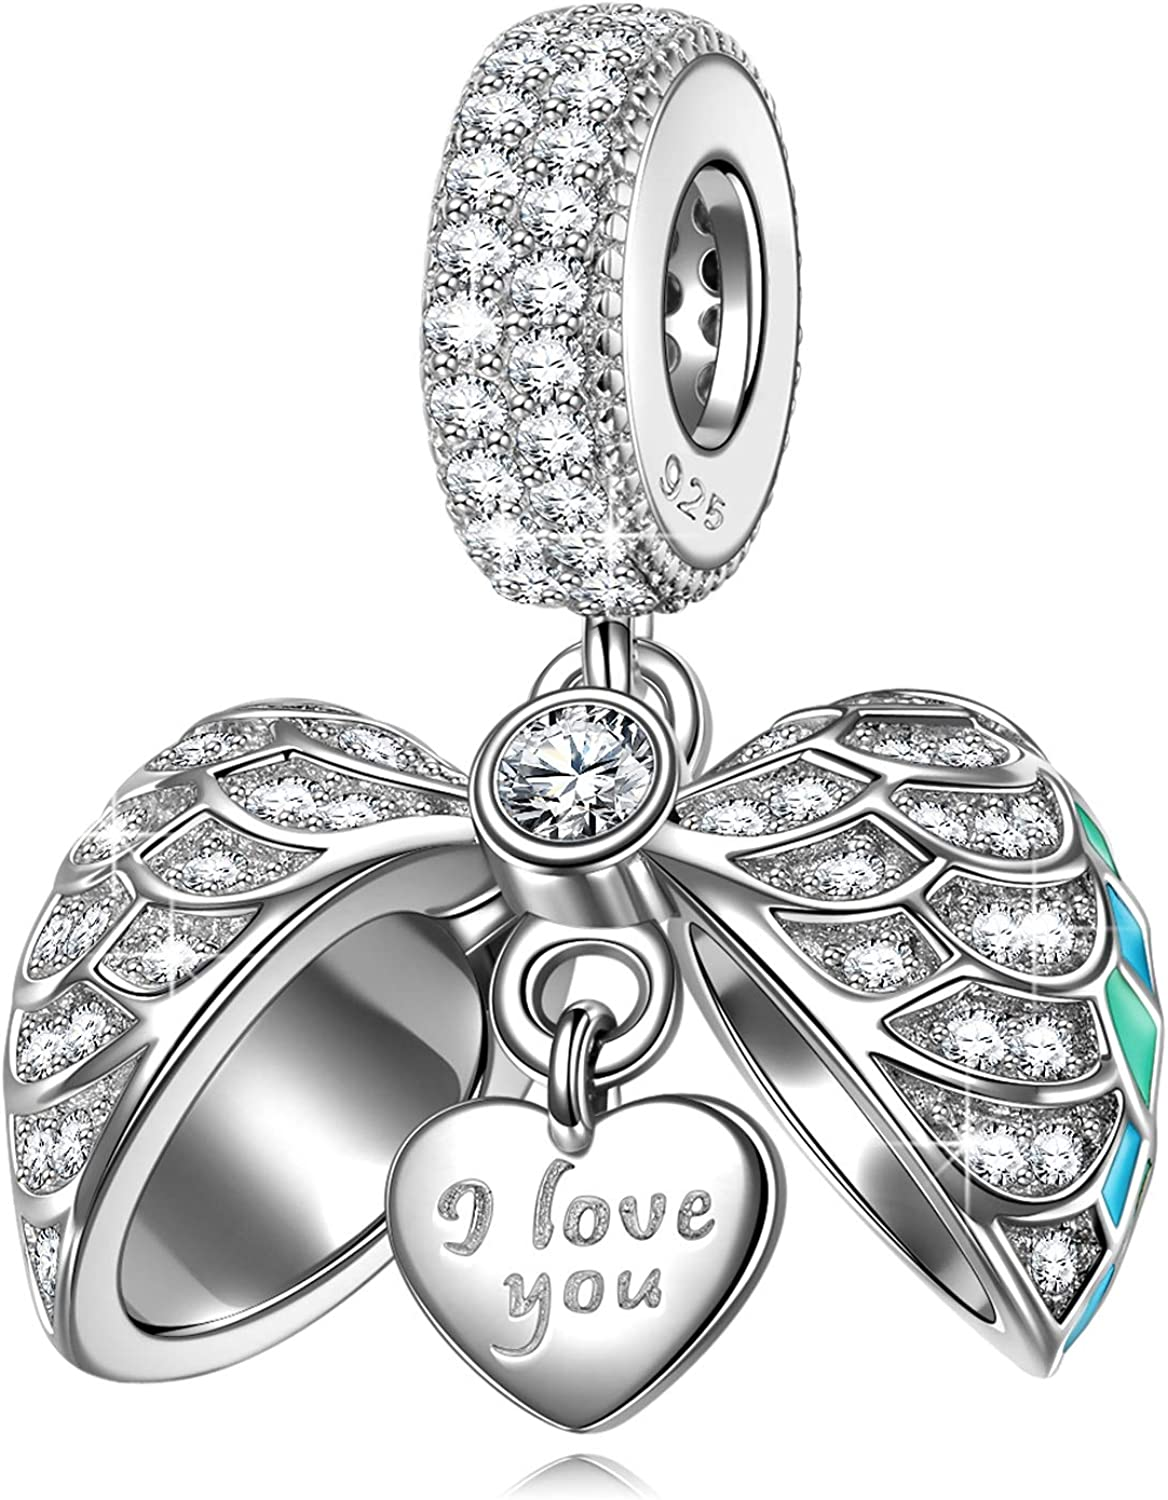 NINAQUEEN Heart Charms 925 Sterling Silver I Love You Dangle Charm Beads with Cubic Zirconi Fit European Bracelet Necklace for Women Birthday Gifts